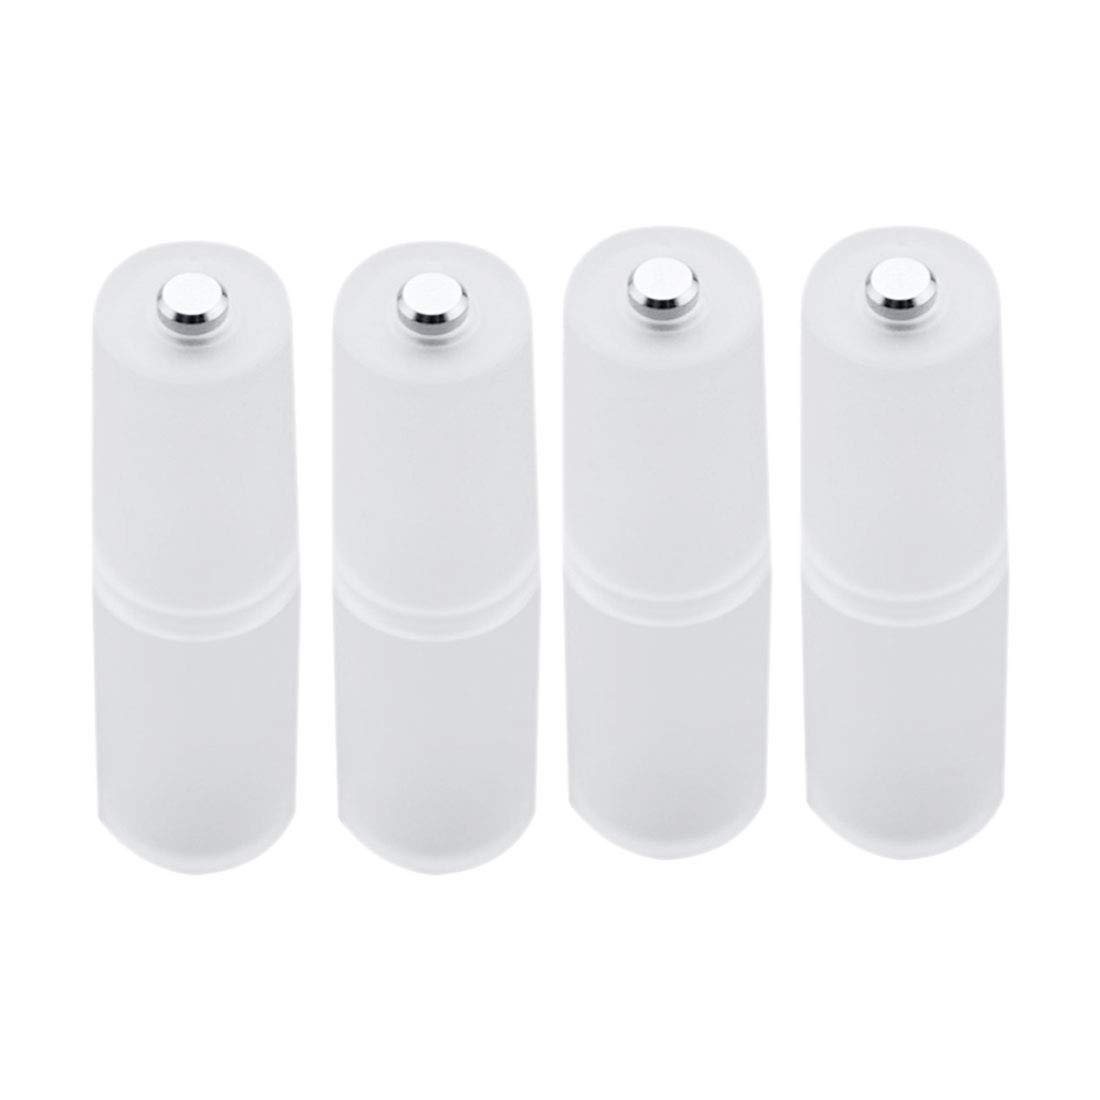 4Pcs Cell Battery box Converter Adapter Batteries Holder Plastic Case Switcher for AAA to AA Size